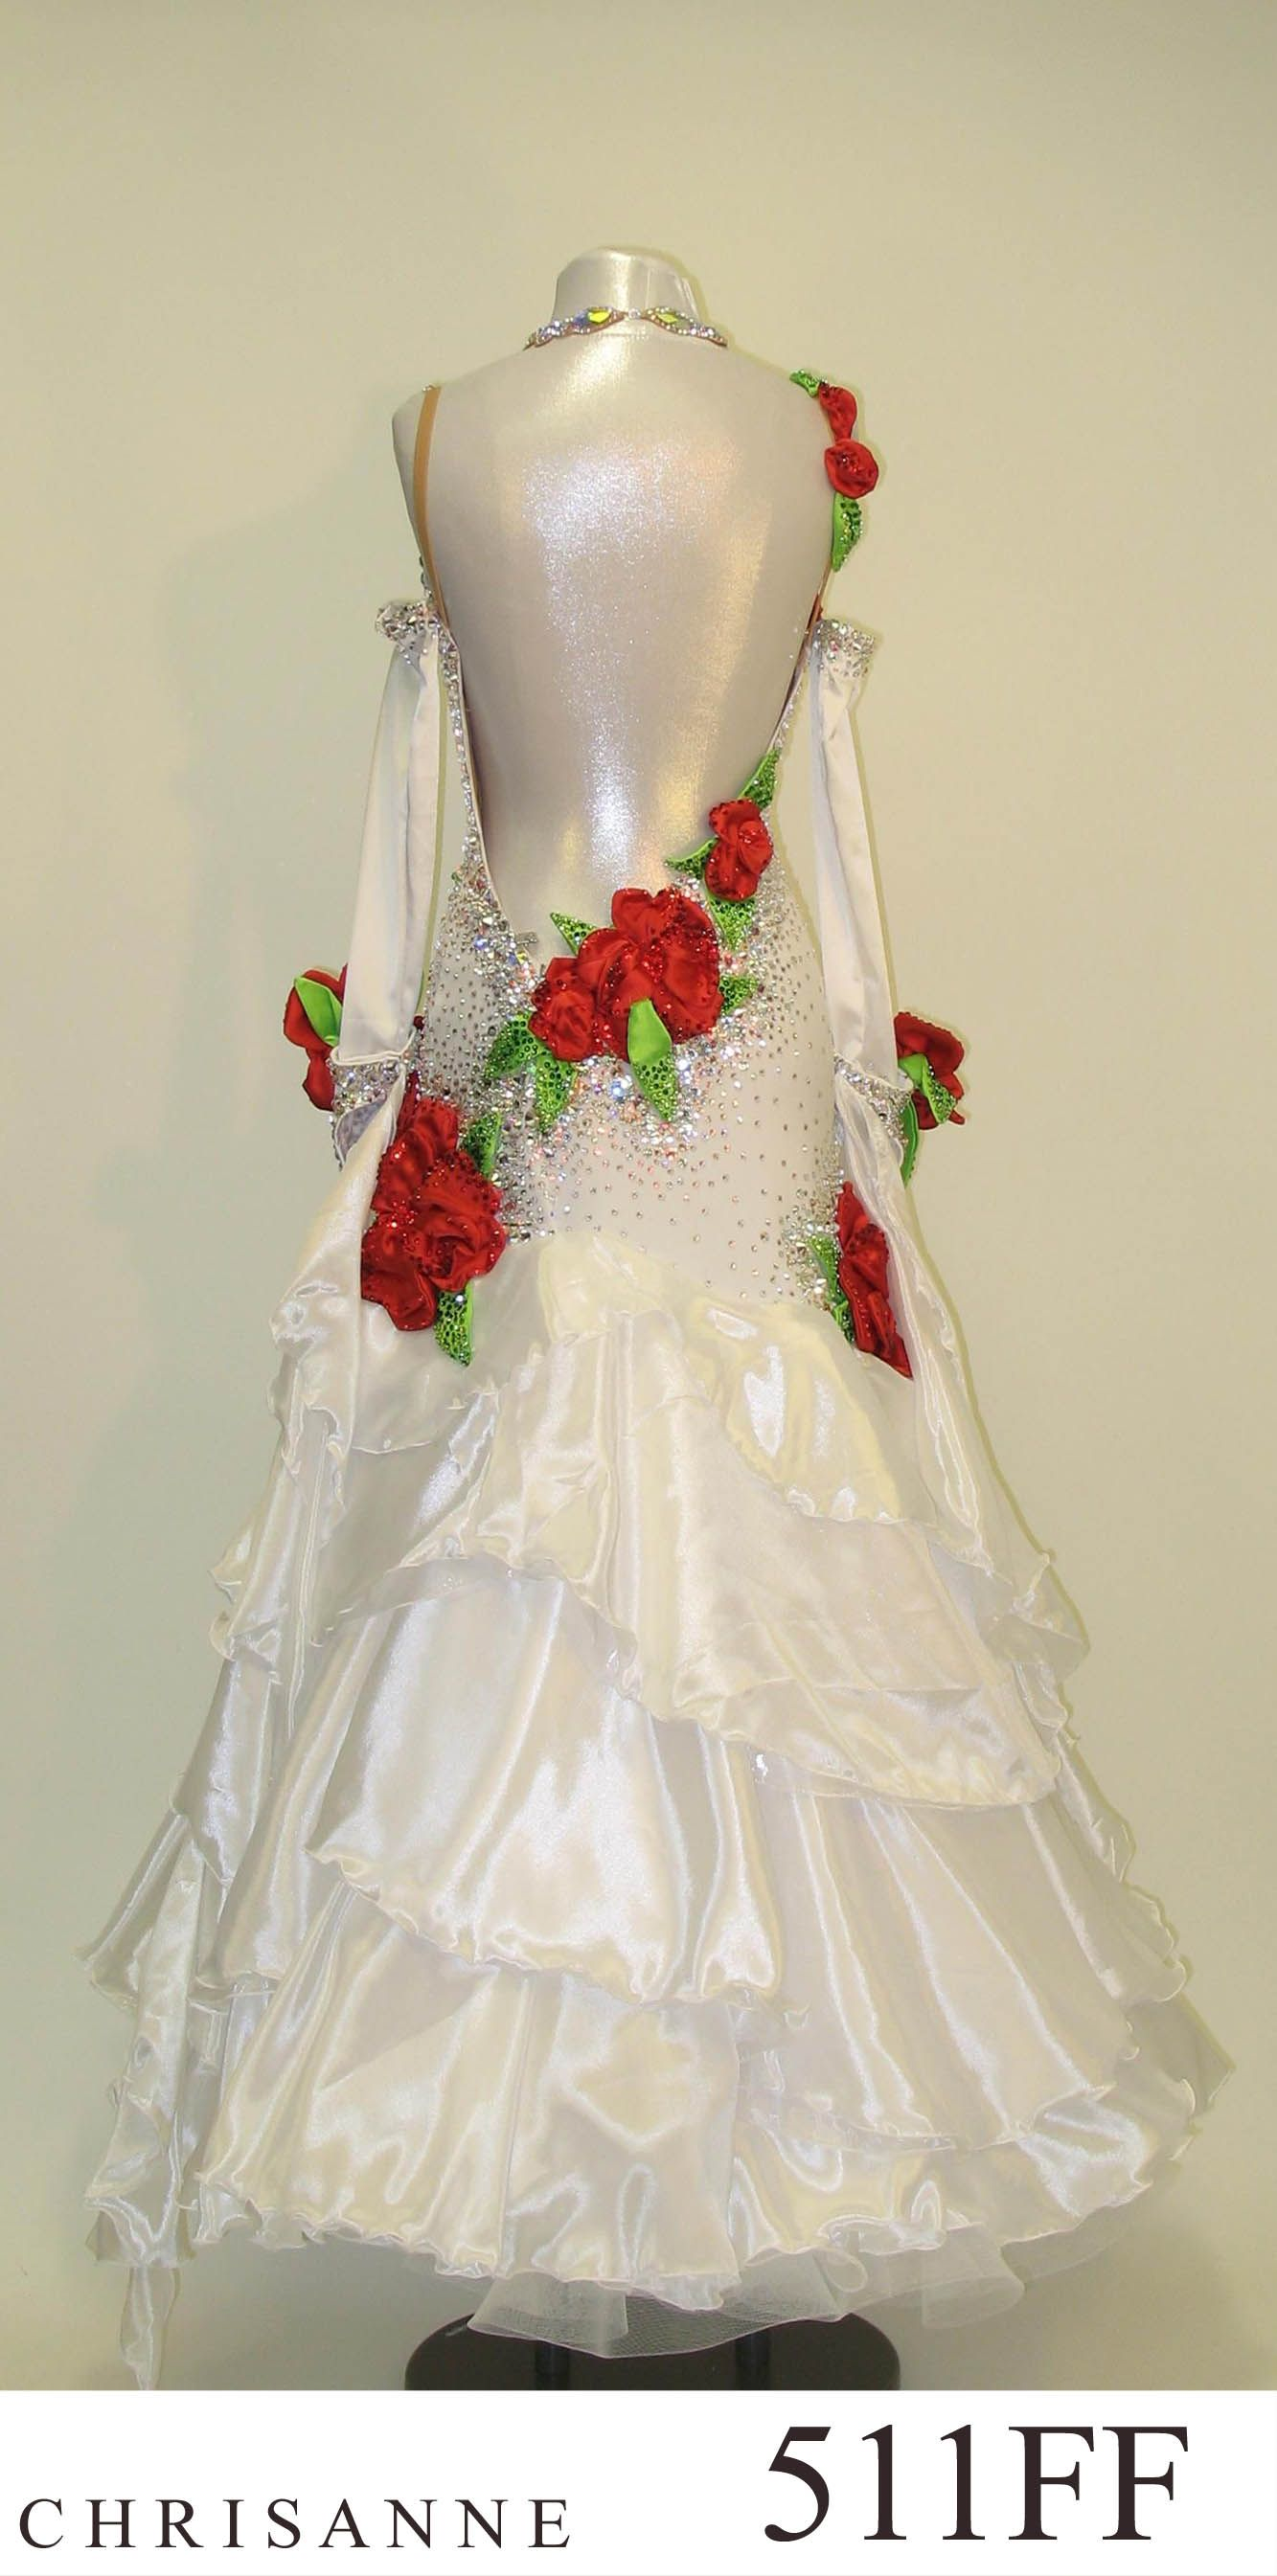 White Dress With Red Flowers Ballroom Dancing Pinterest